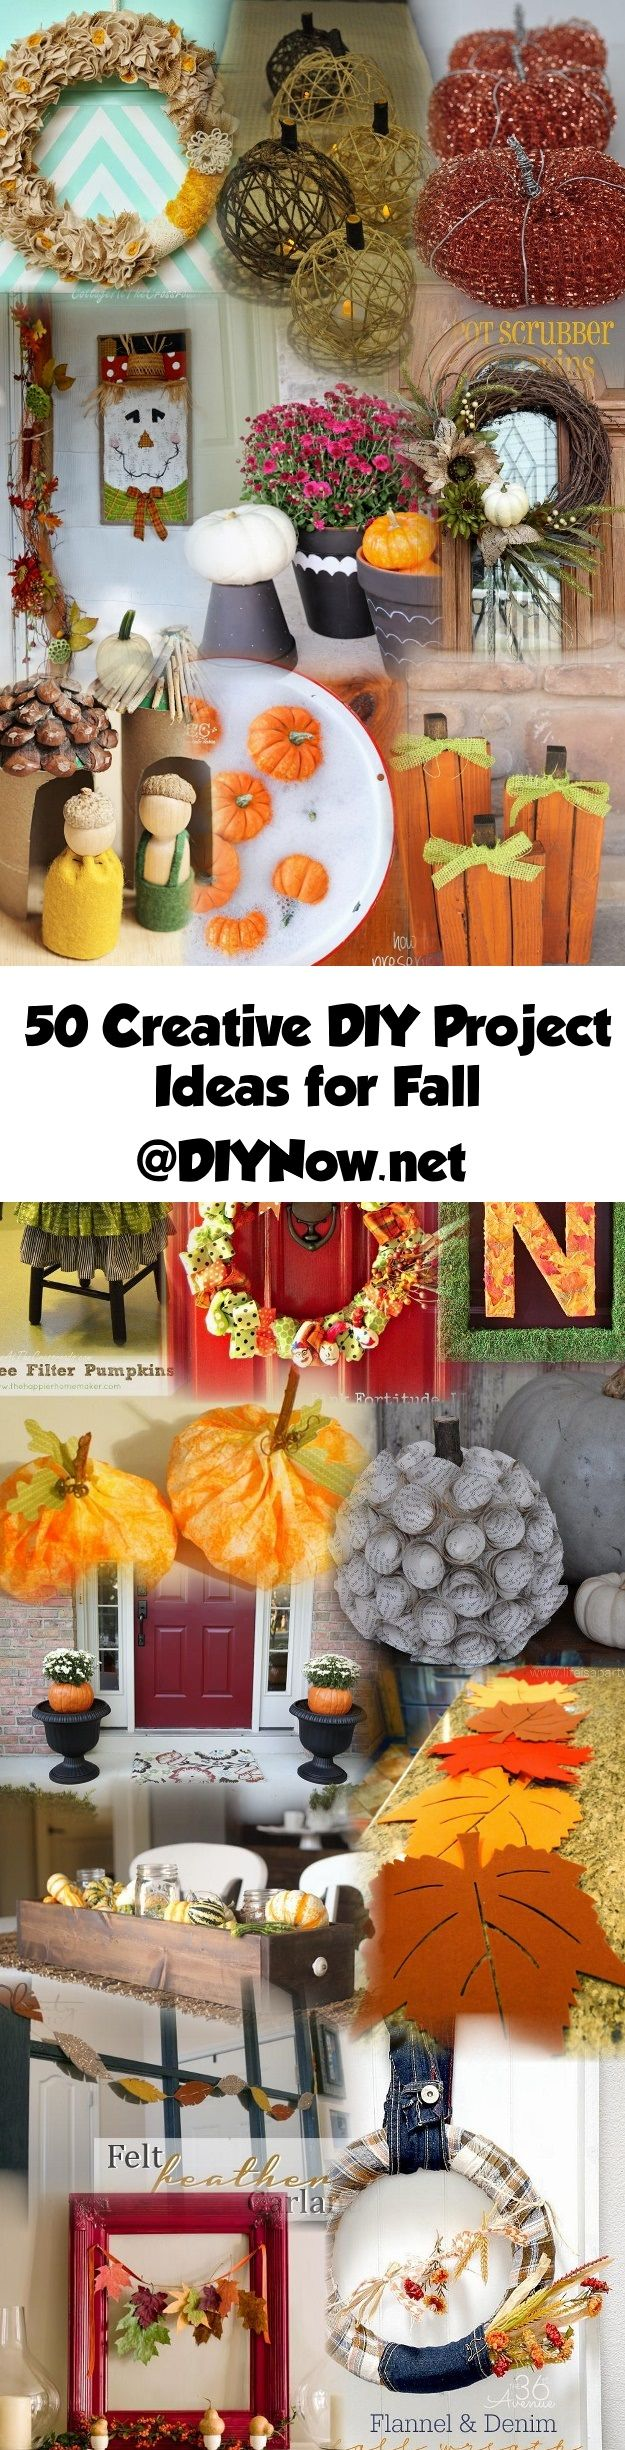 50 Creative DIY Project Ideas for Fall